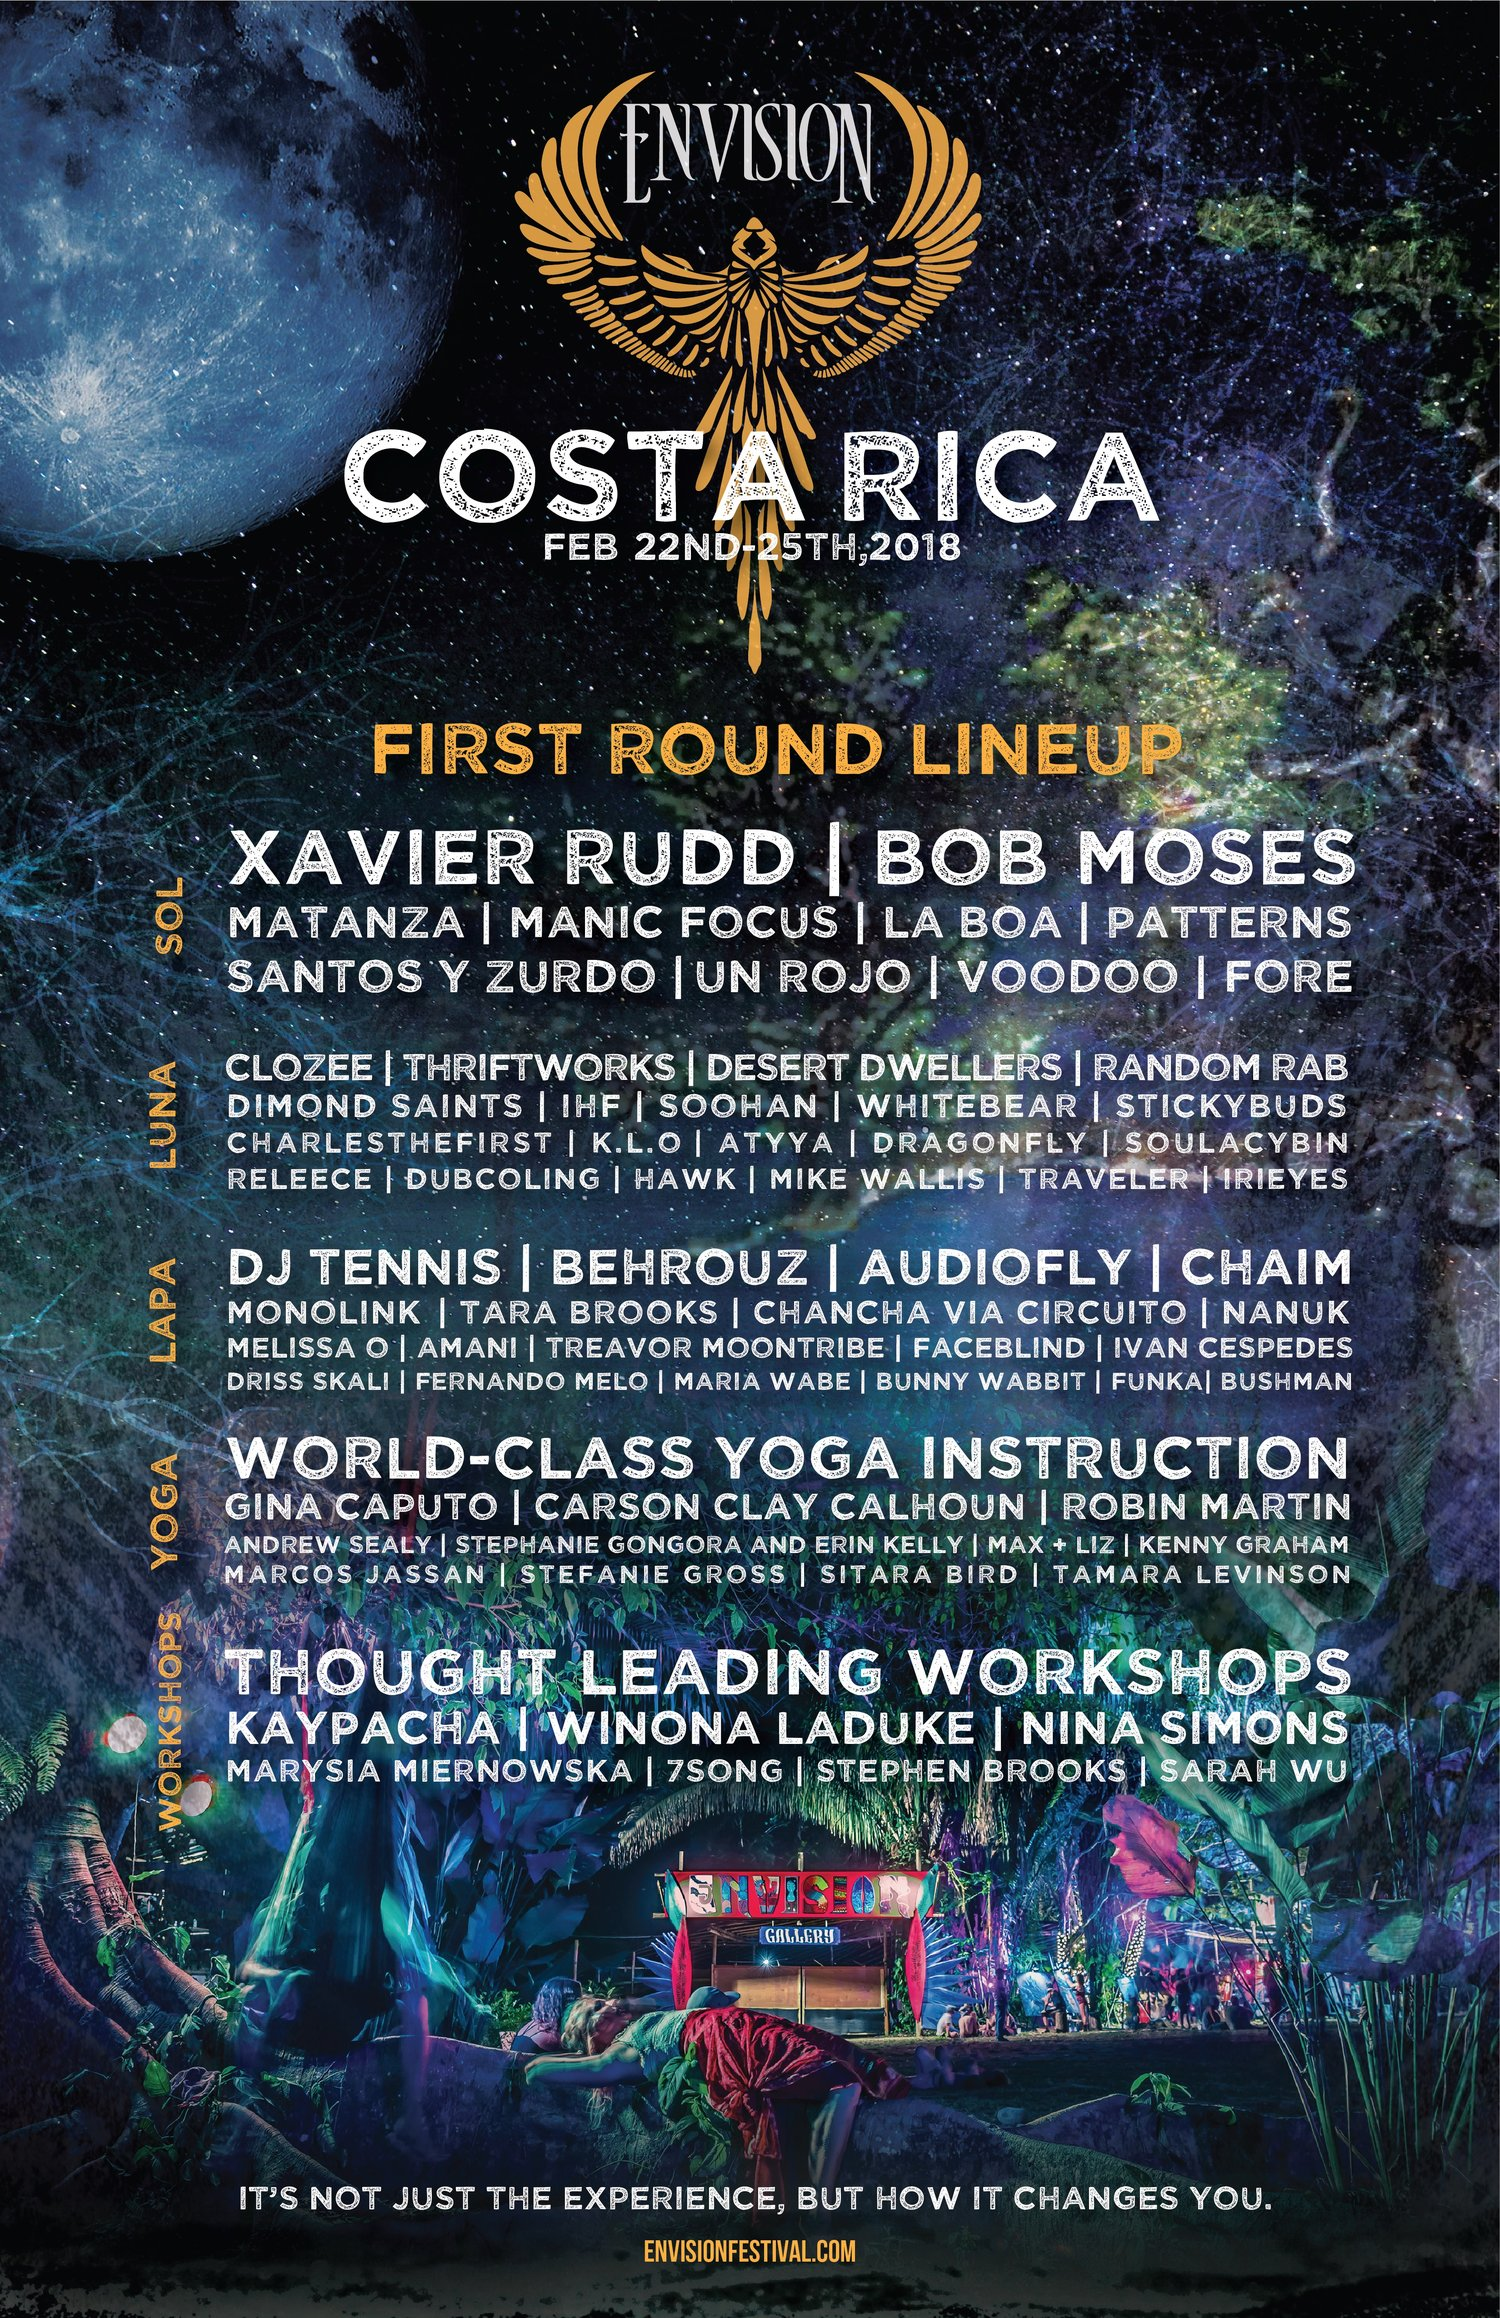 Envision Festival 2020 Lineup Envision Festival Announces First Round Lineup for Event in Costa